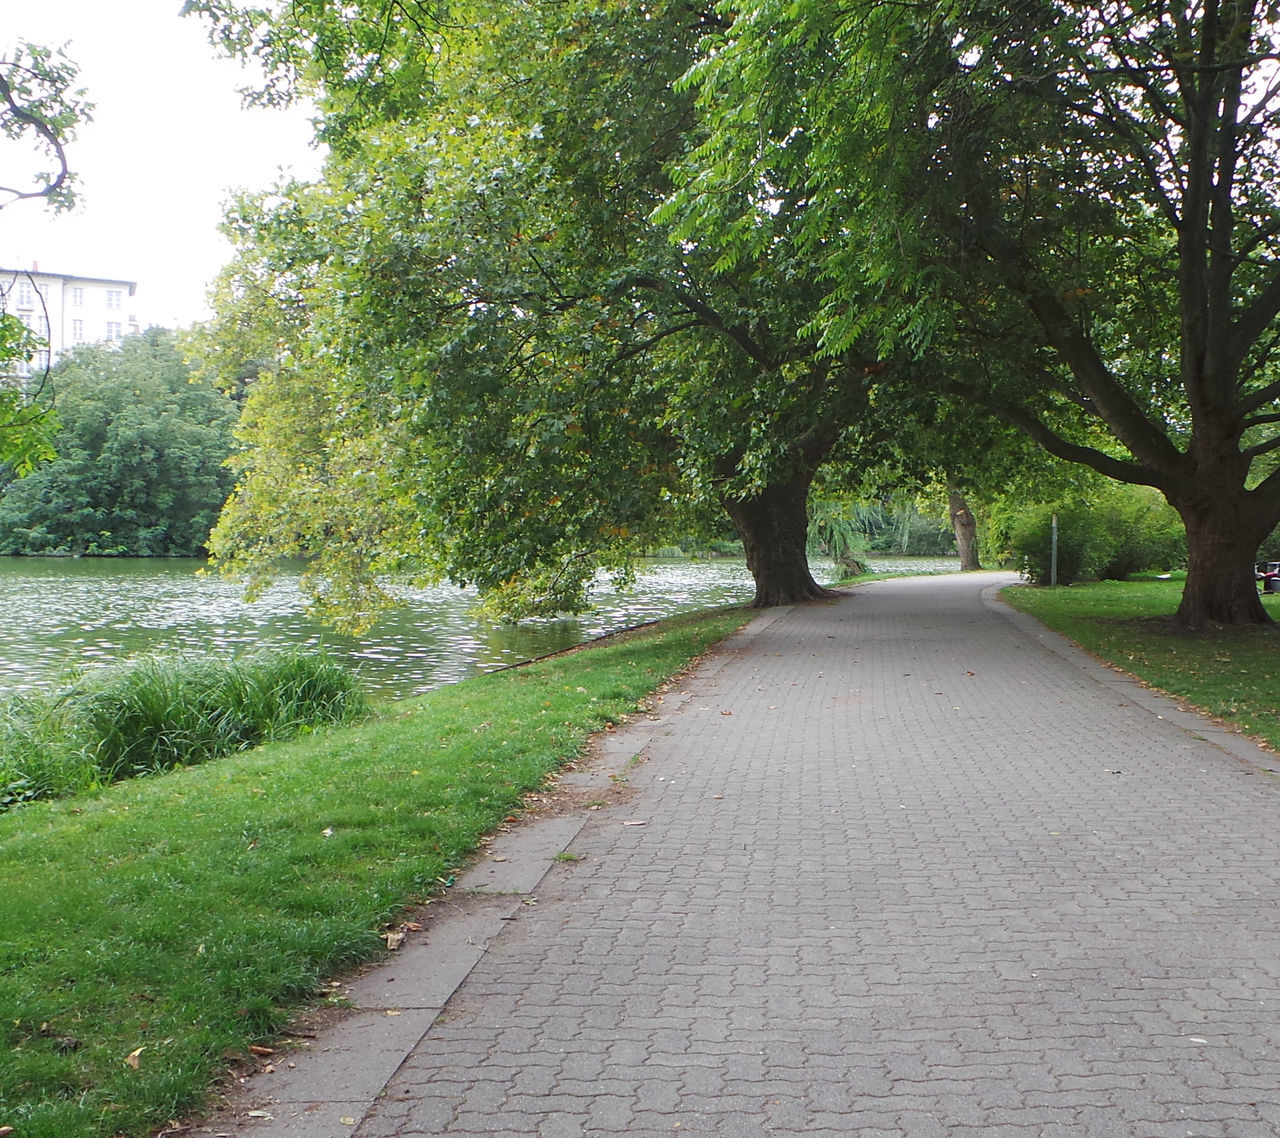 tree, the way forward, nature, grass, growth, river, road, outdoors, no people, beauty in nature, day, scenery, sky